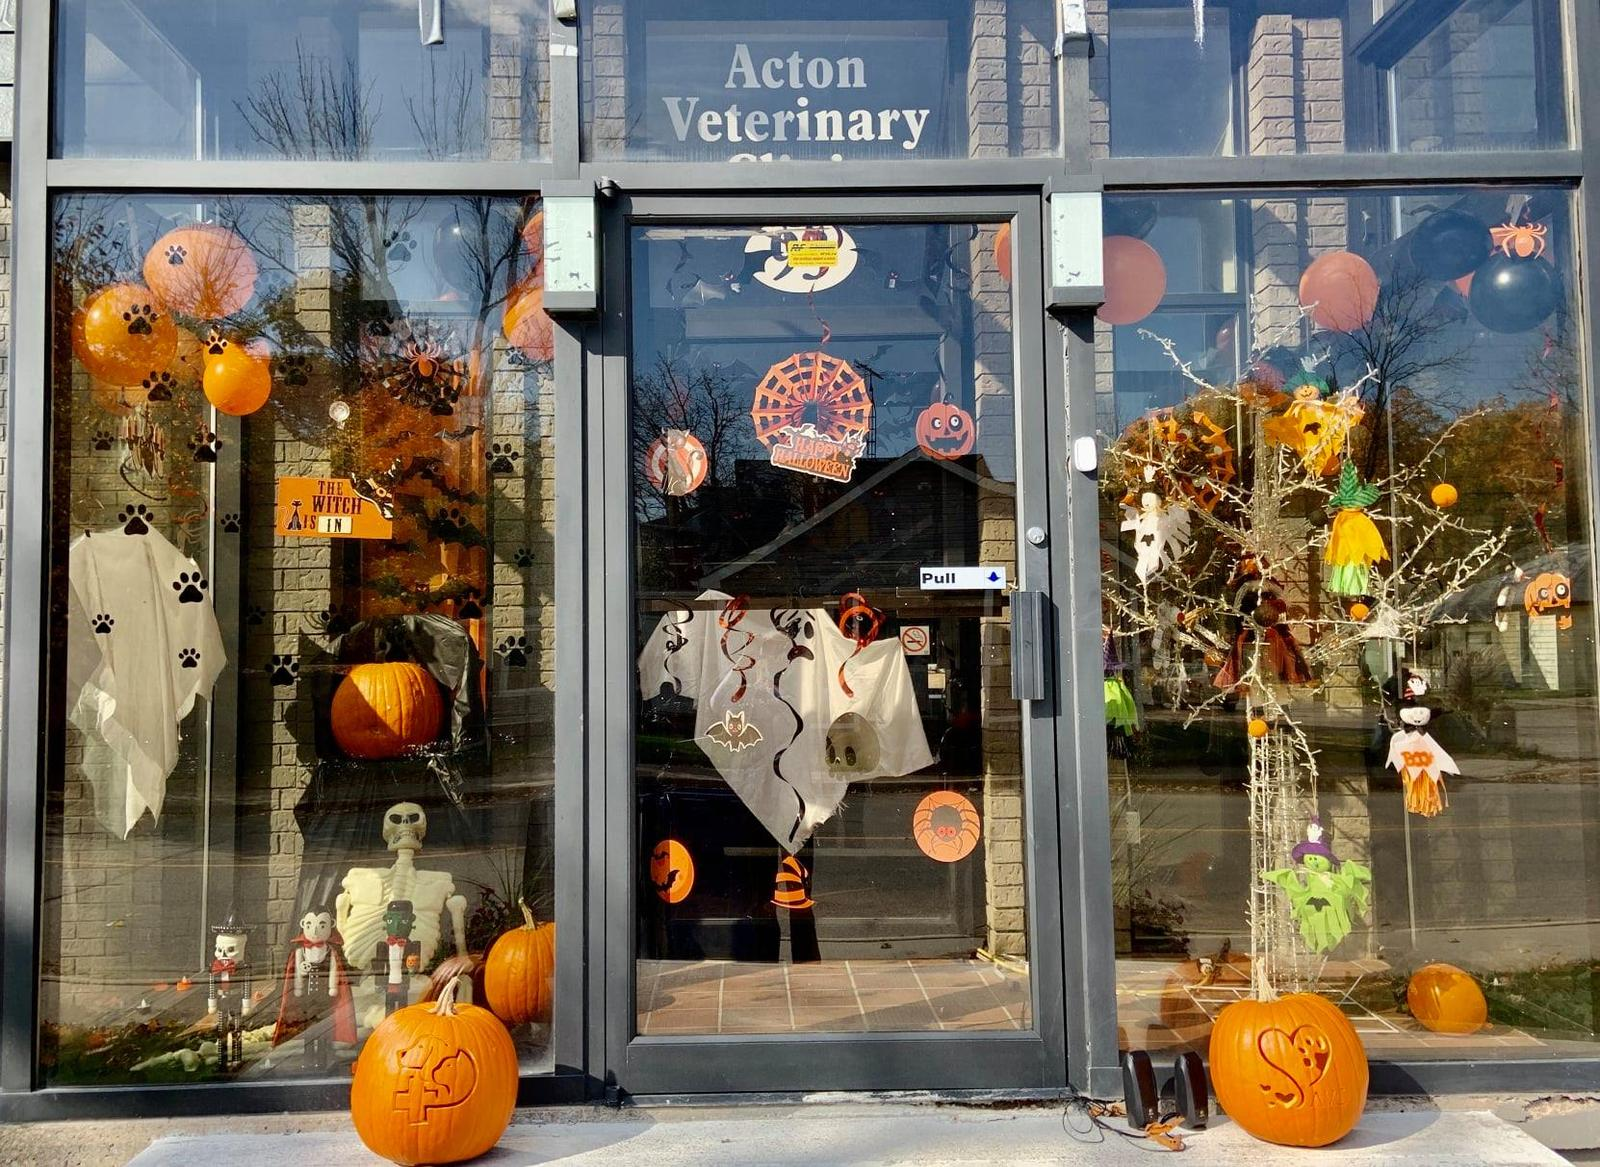 Acton Veterinary Clinic wins Acton BIA Halloween Best Decorated Business